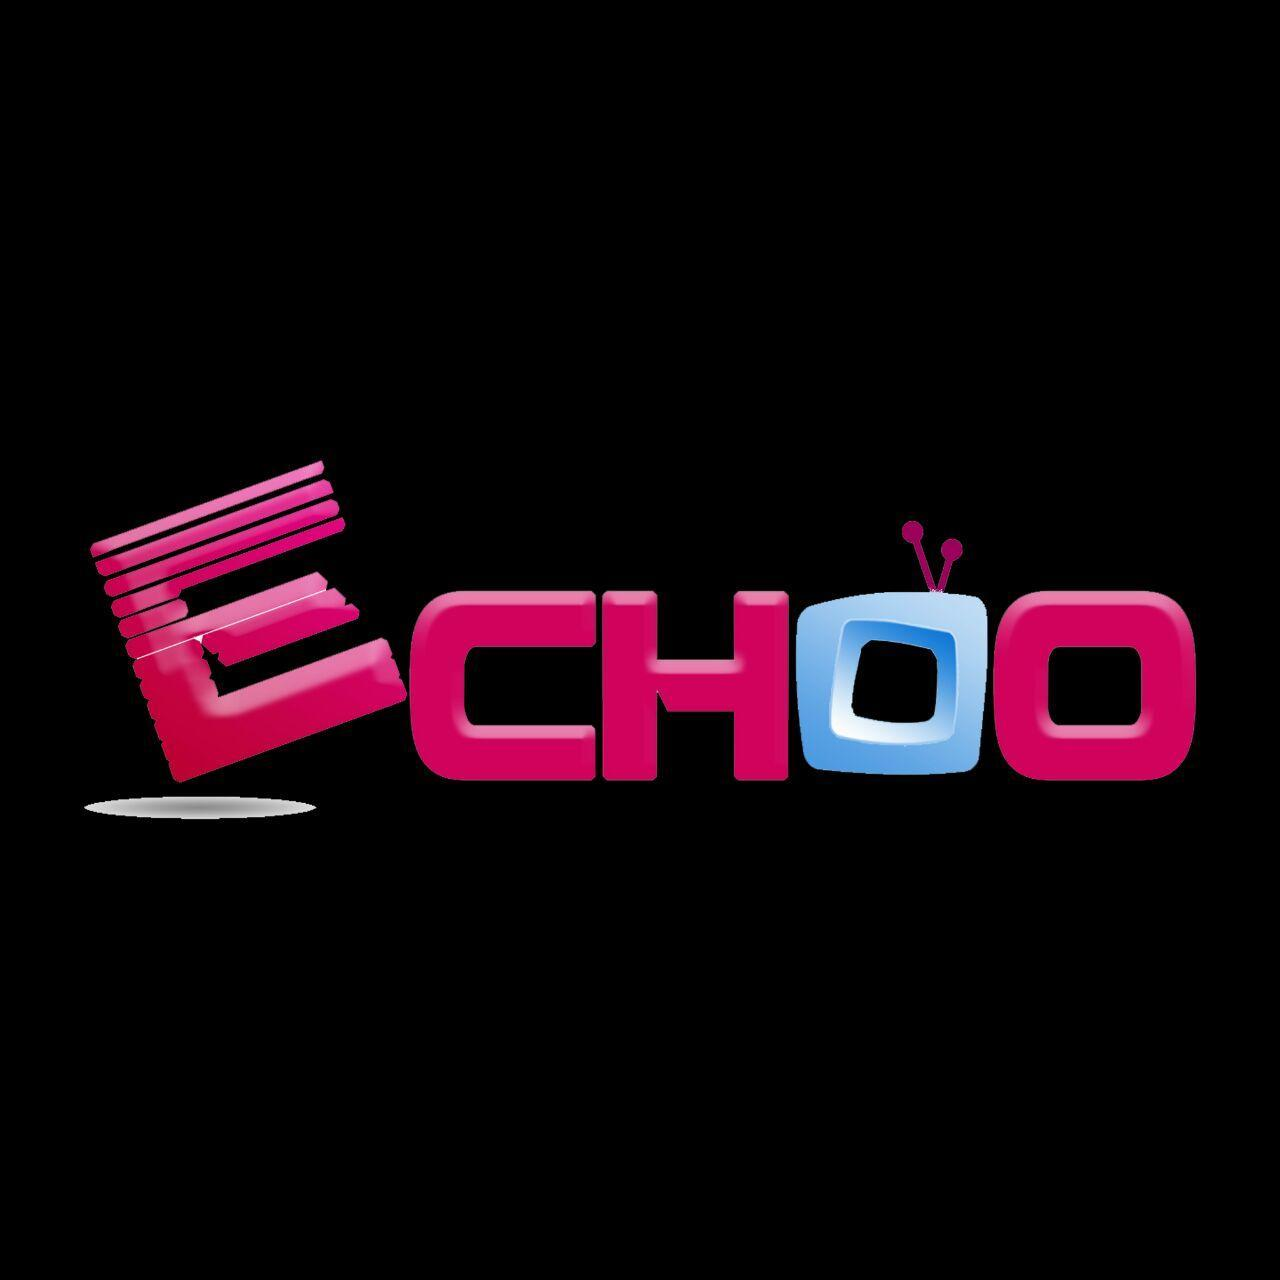 Echoo TV Device HD for Android - APK Download